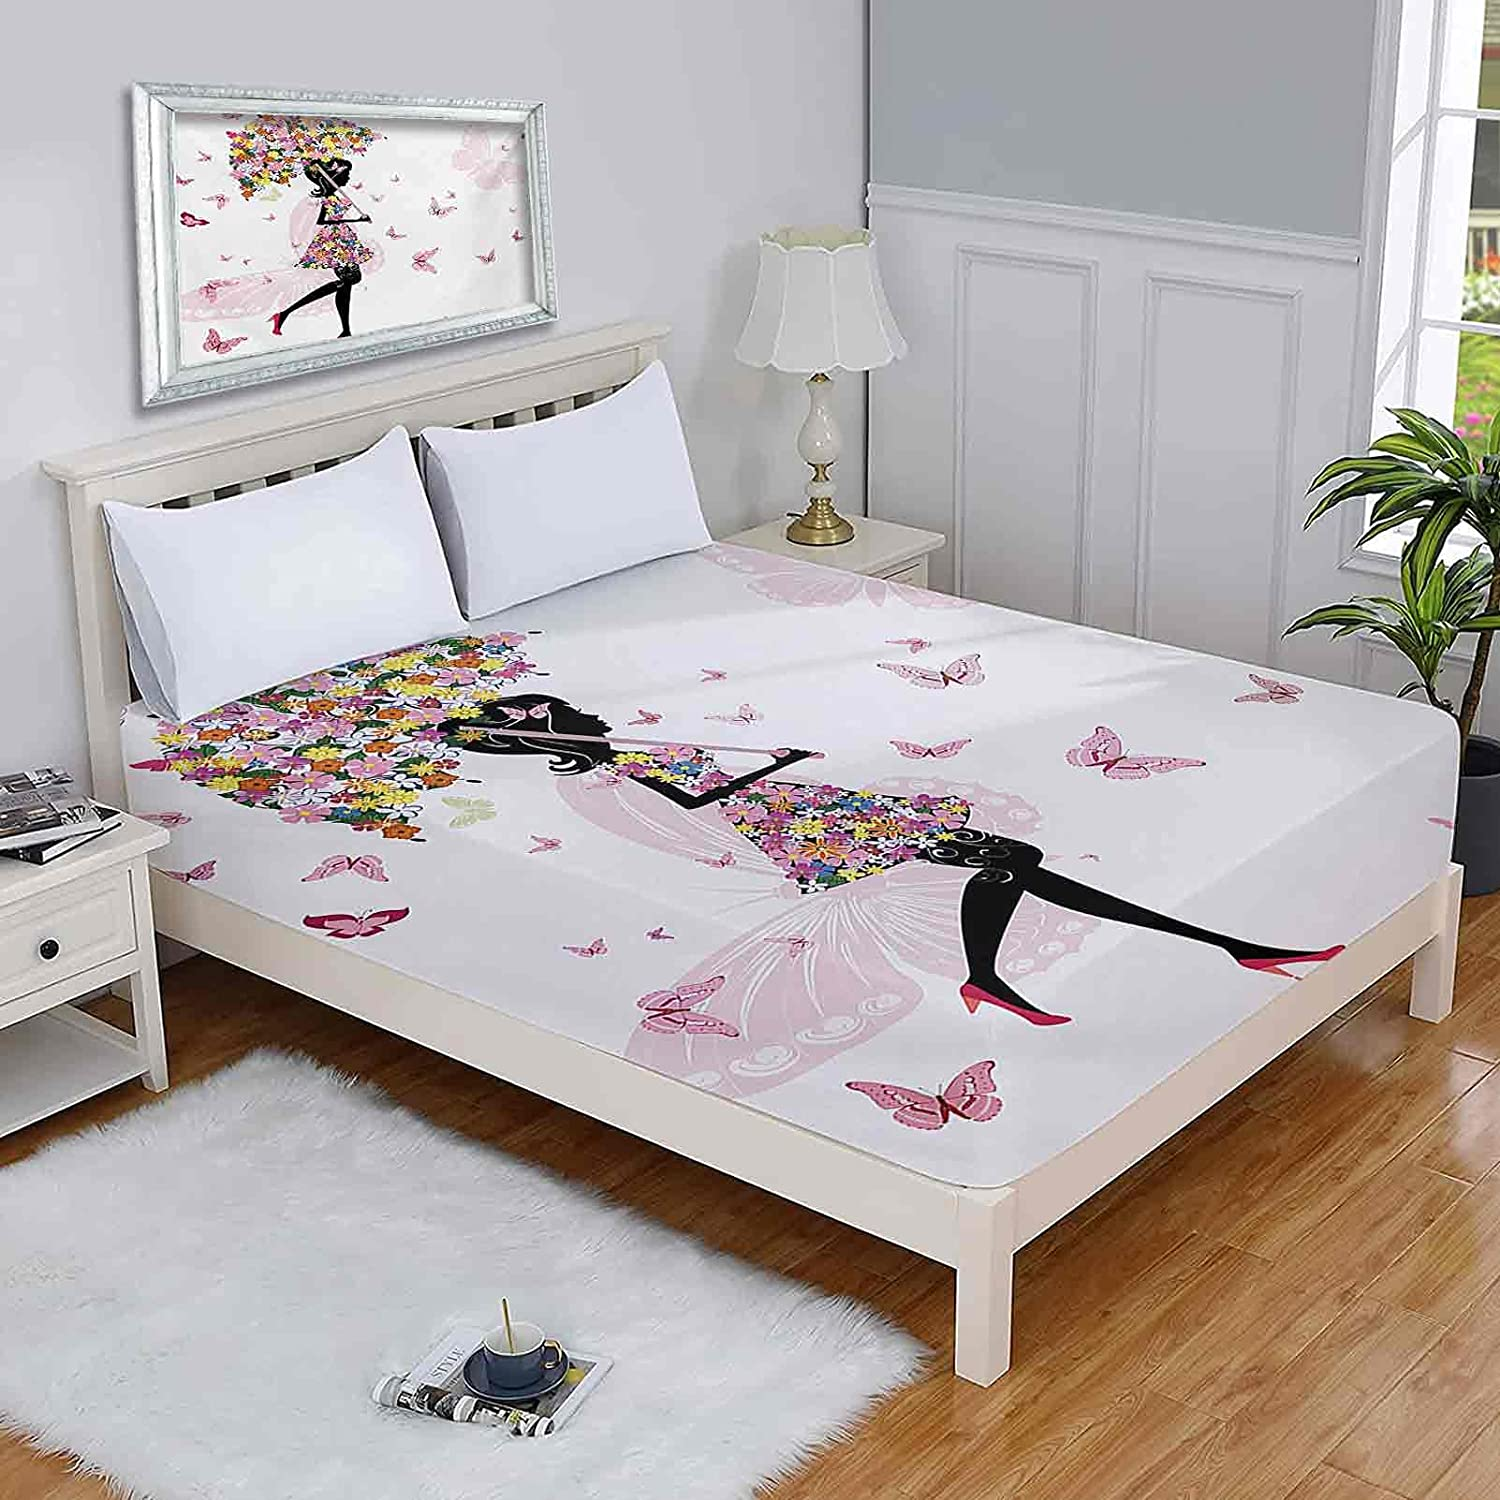 Girls Twin-XL Mattress free shipping Protectors Girl Umbrella and Floral with Surprise price